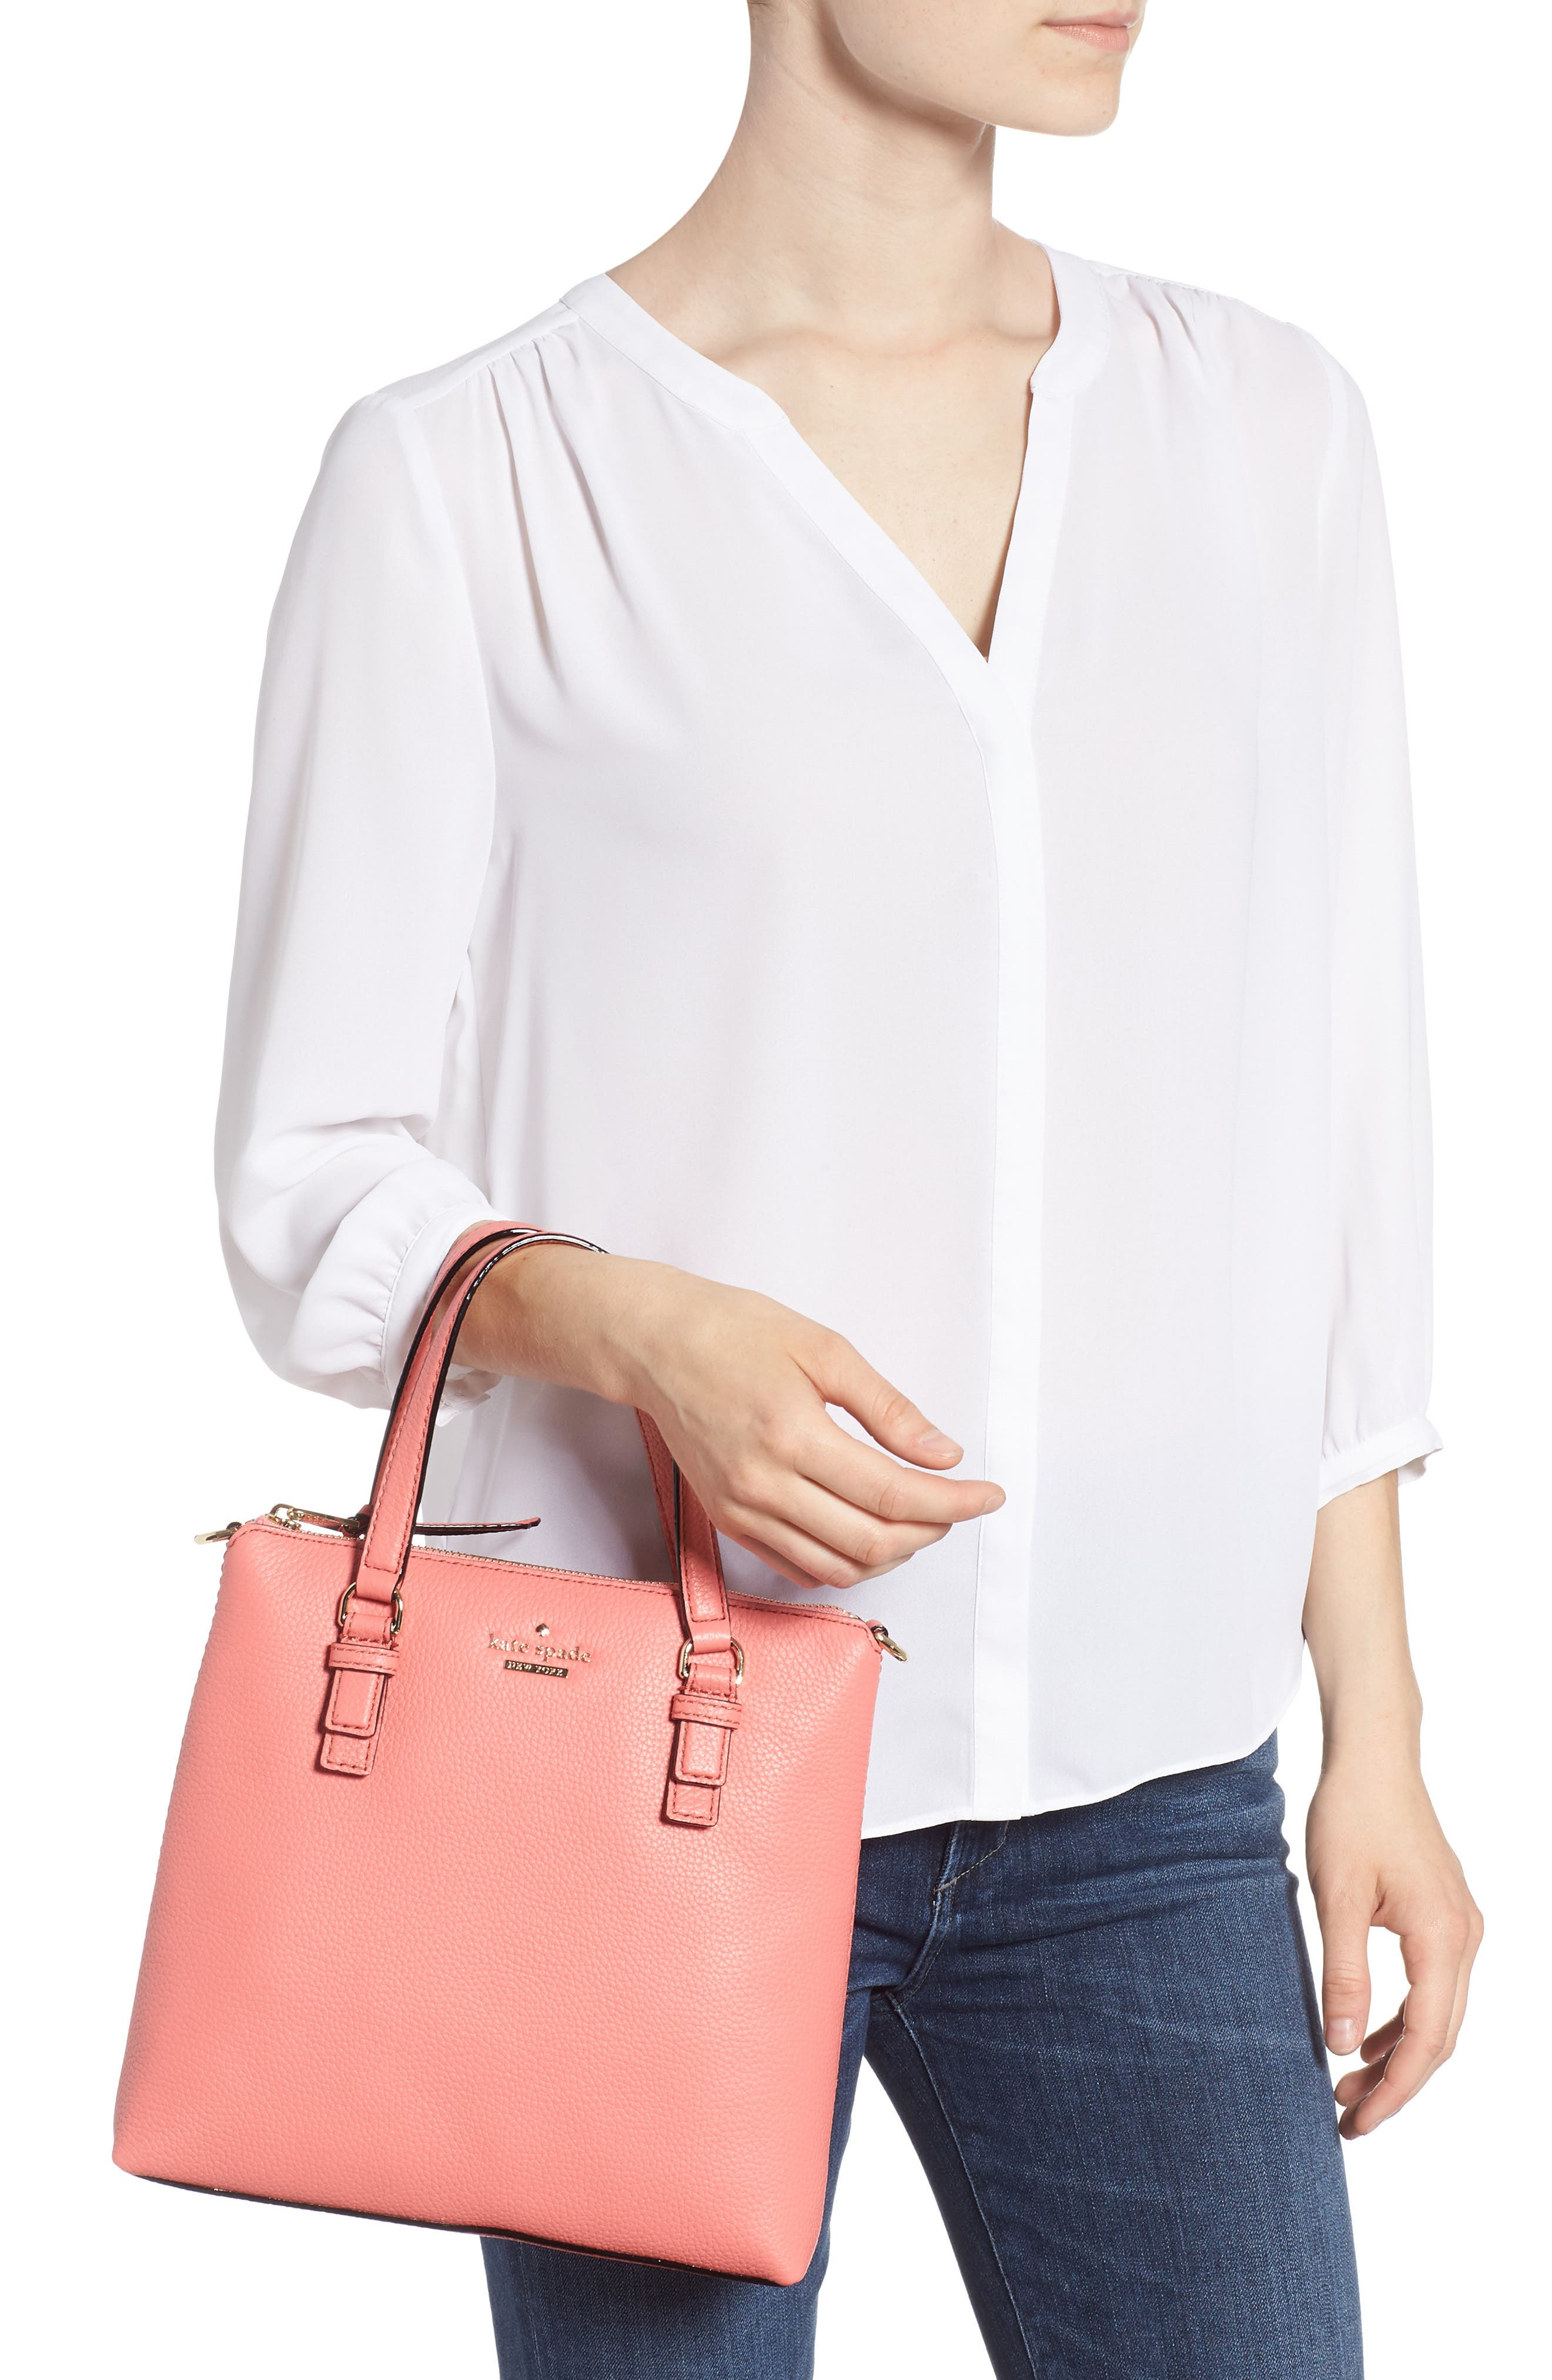 jackson street - hayley leather satchel,                             Alternate thumbnail 2, color,                             897